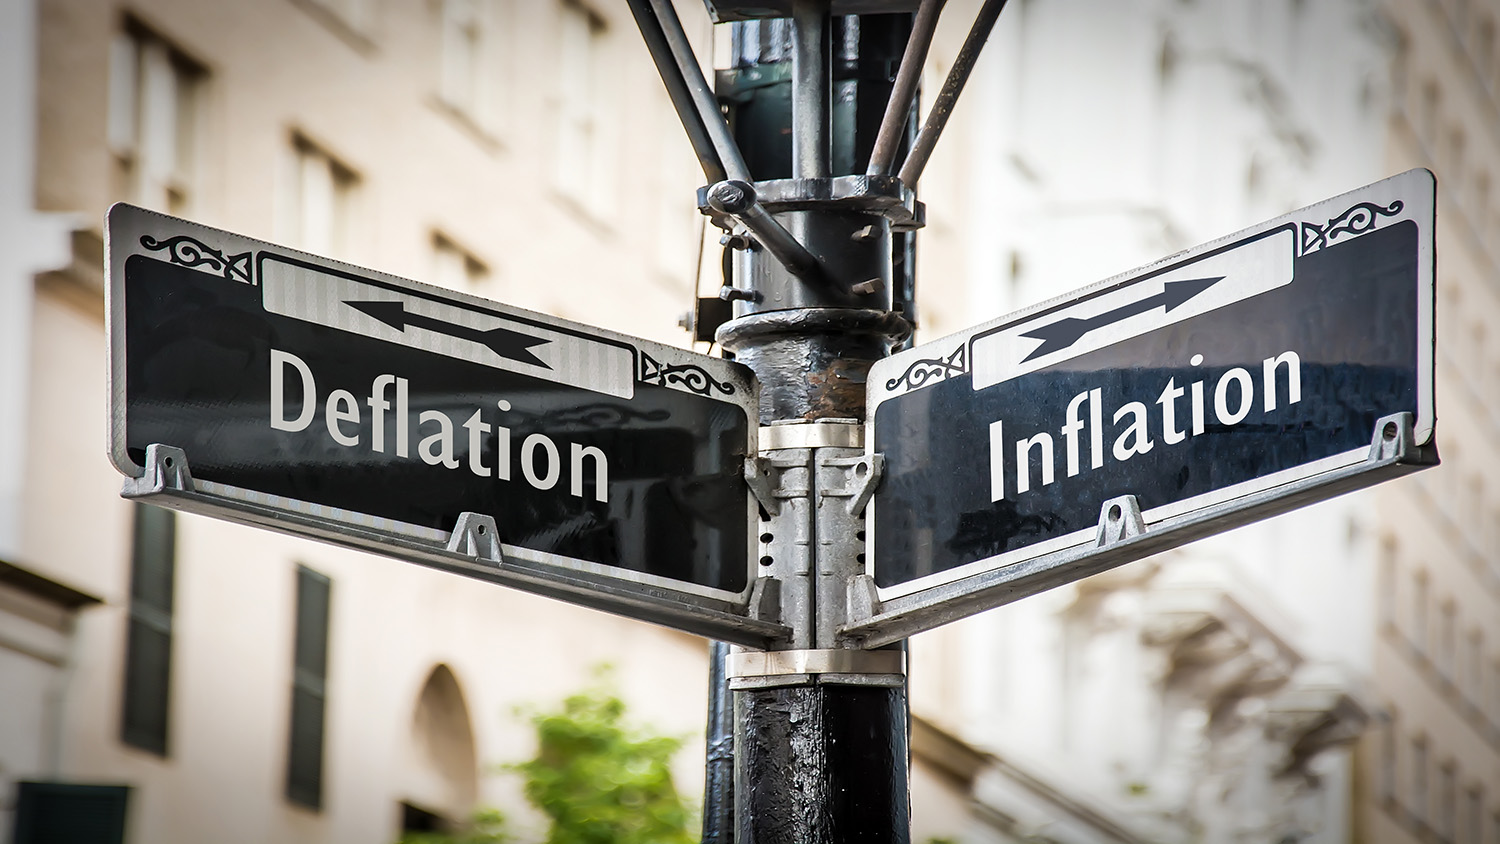 Inflation 2021: U.S. Labor Department revealed consumer prices are 5% higher in May 2021 over May 2020